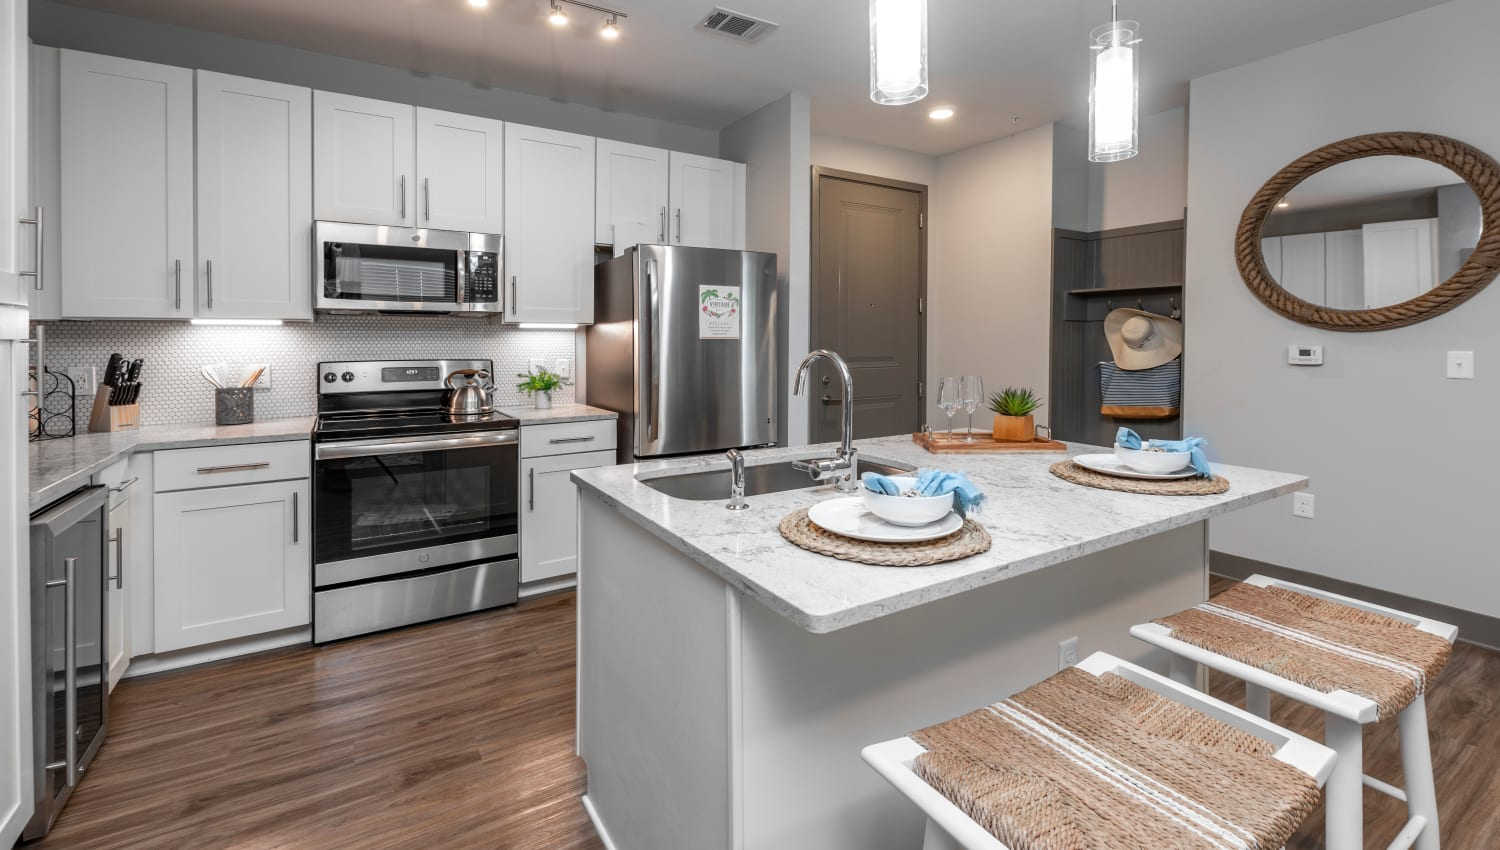 A kitchen with plenty of countertop space at Olympus Emerald Coast in Destin, Florida